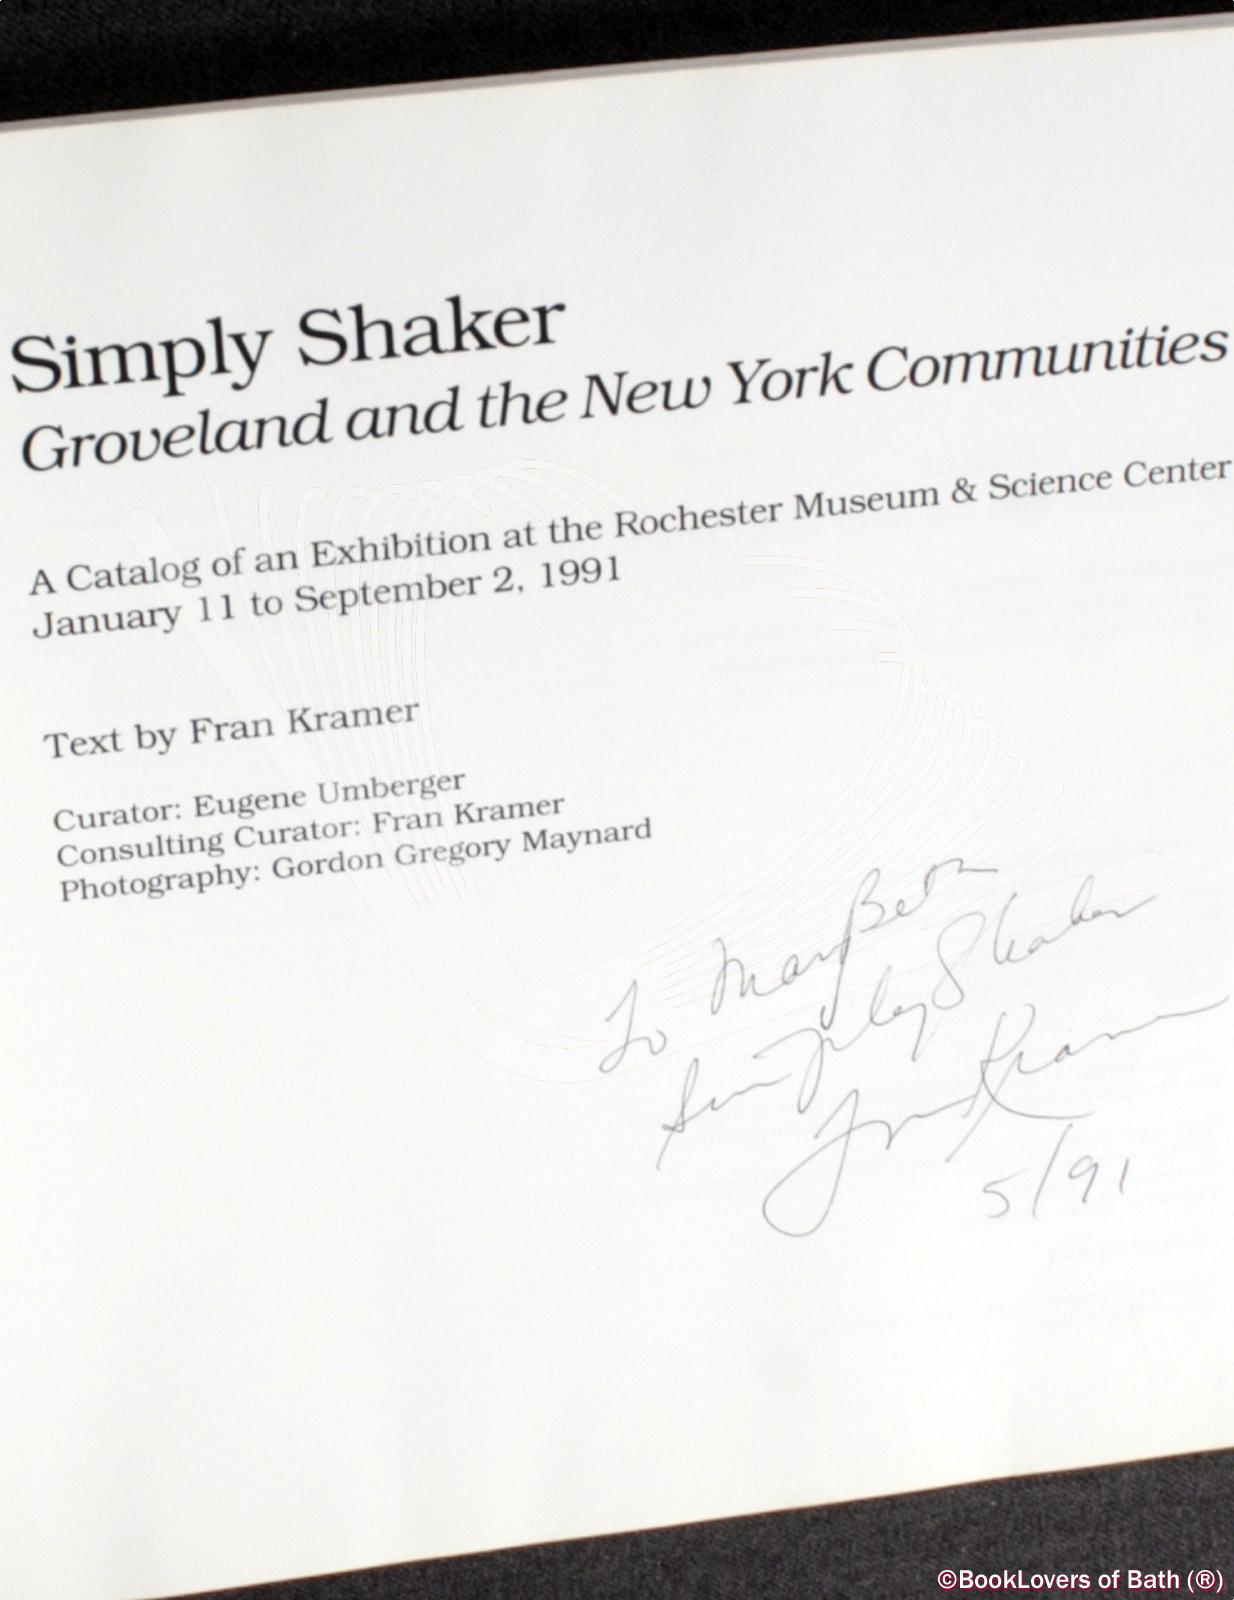 Simply Shaker: Groveland and the New York Communities: A Catalog of an Exhibition the Rochester Museum & Science Center January 11 to September 2, 1991 - Fran Kramer